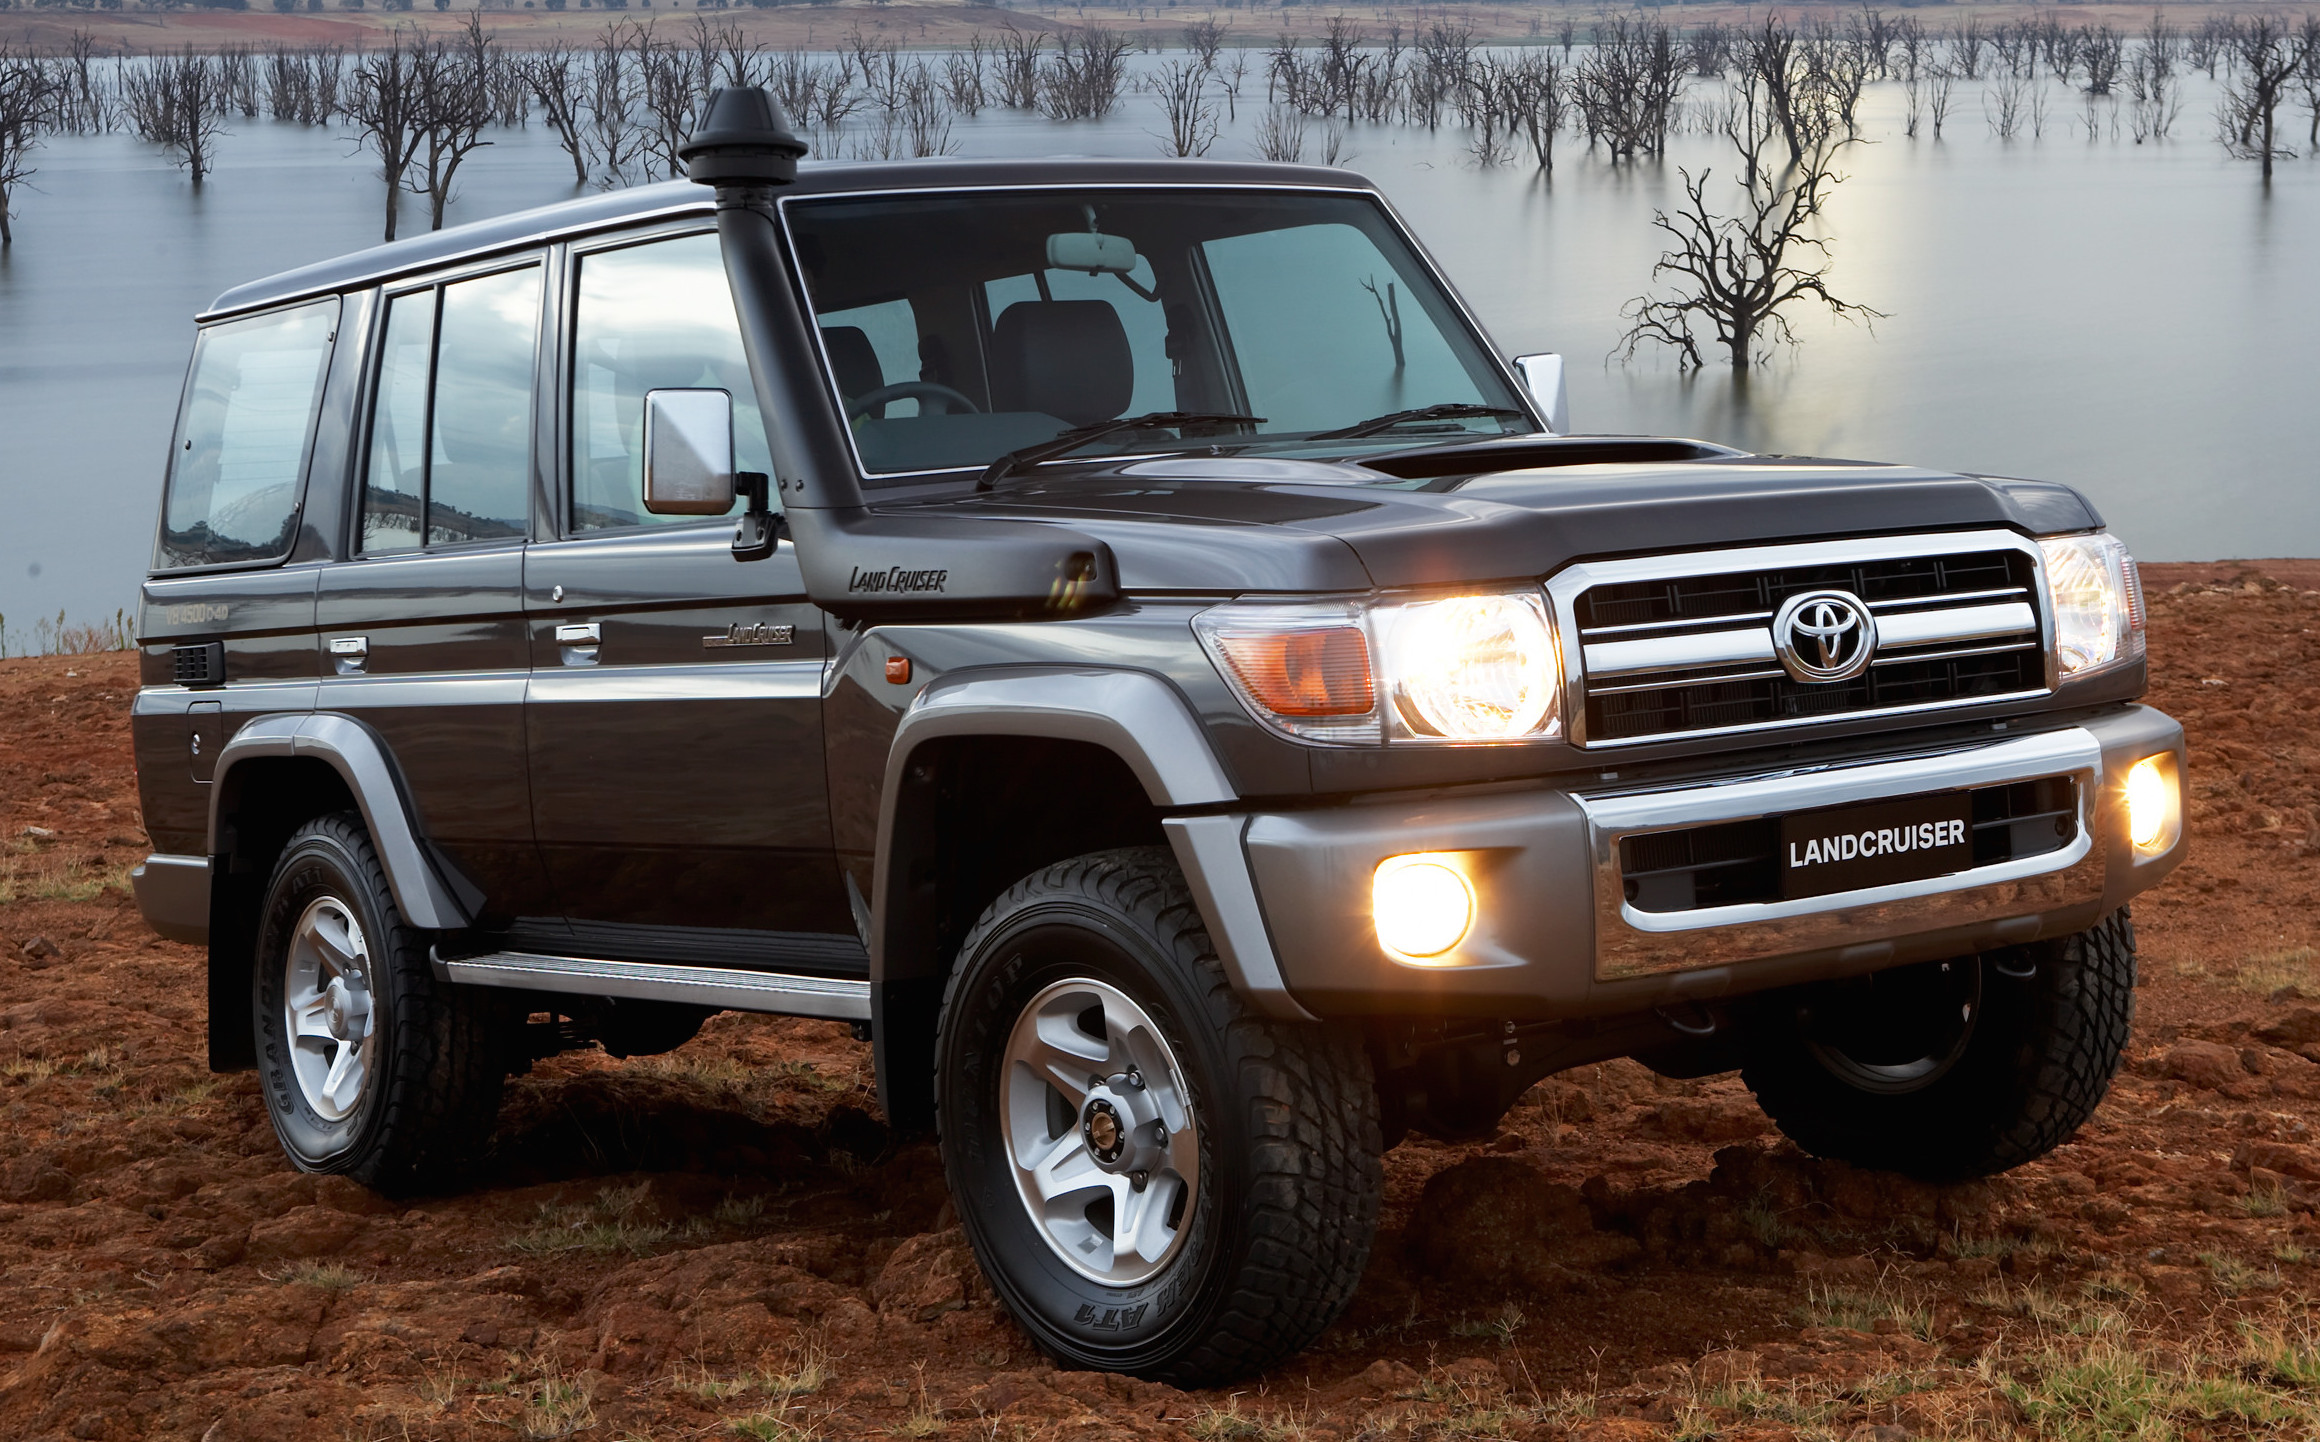 Toyota Land Cruiser 70 set to be 5-star ANCAP-rated